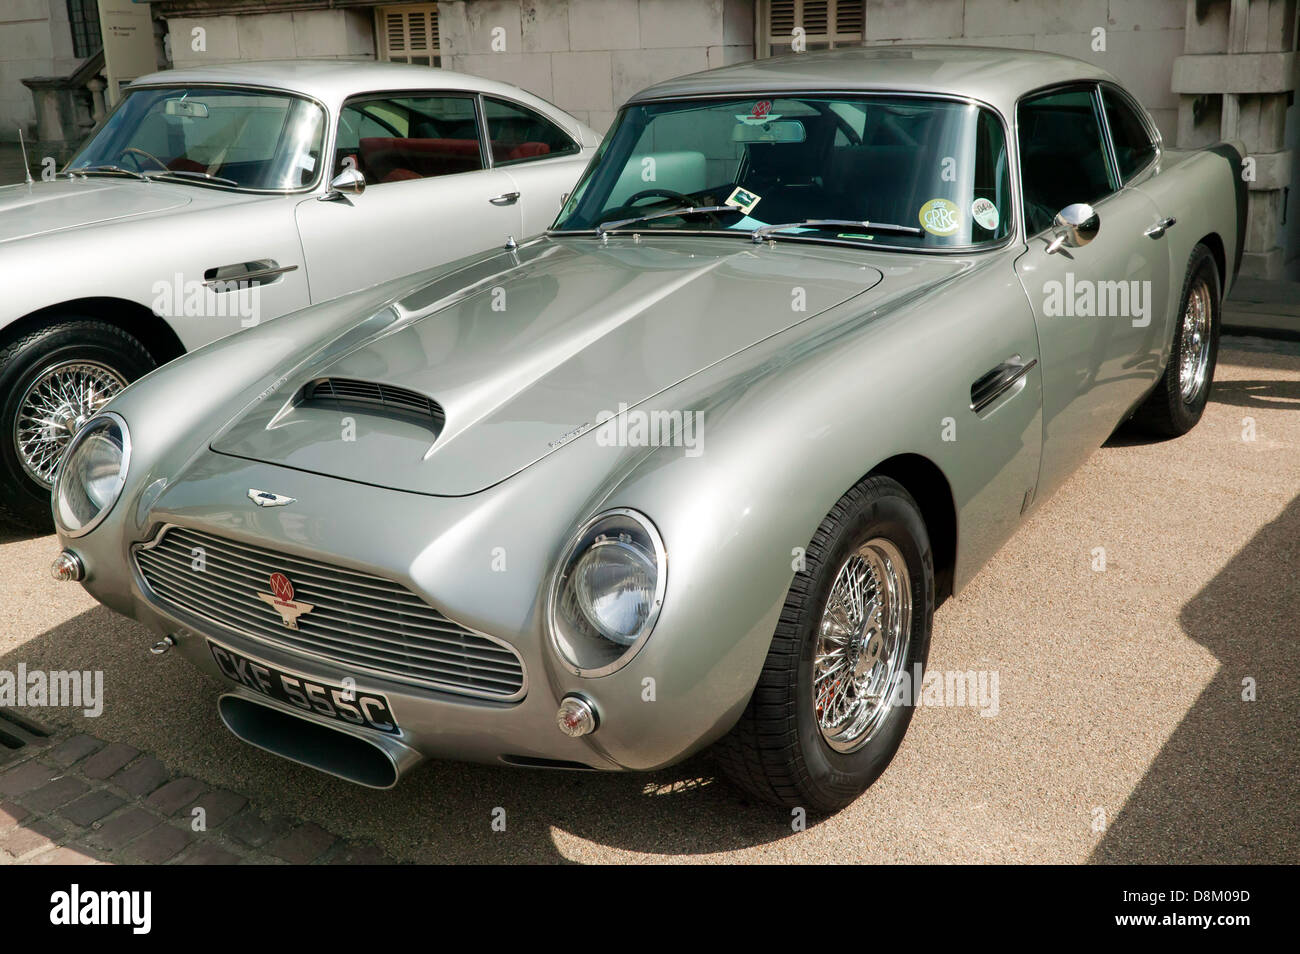 classic aston martin db5 on display at the old royal naval college stock photo royalty free. Black Bedroom Furniture Sets. Home Design Ideas